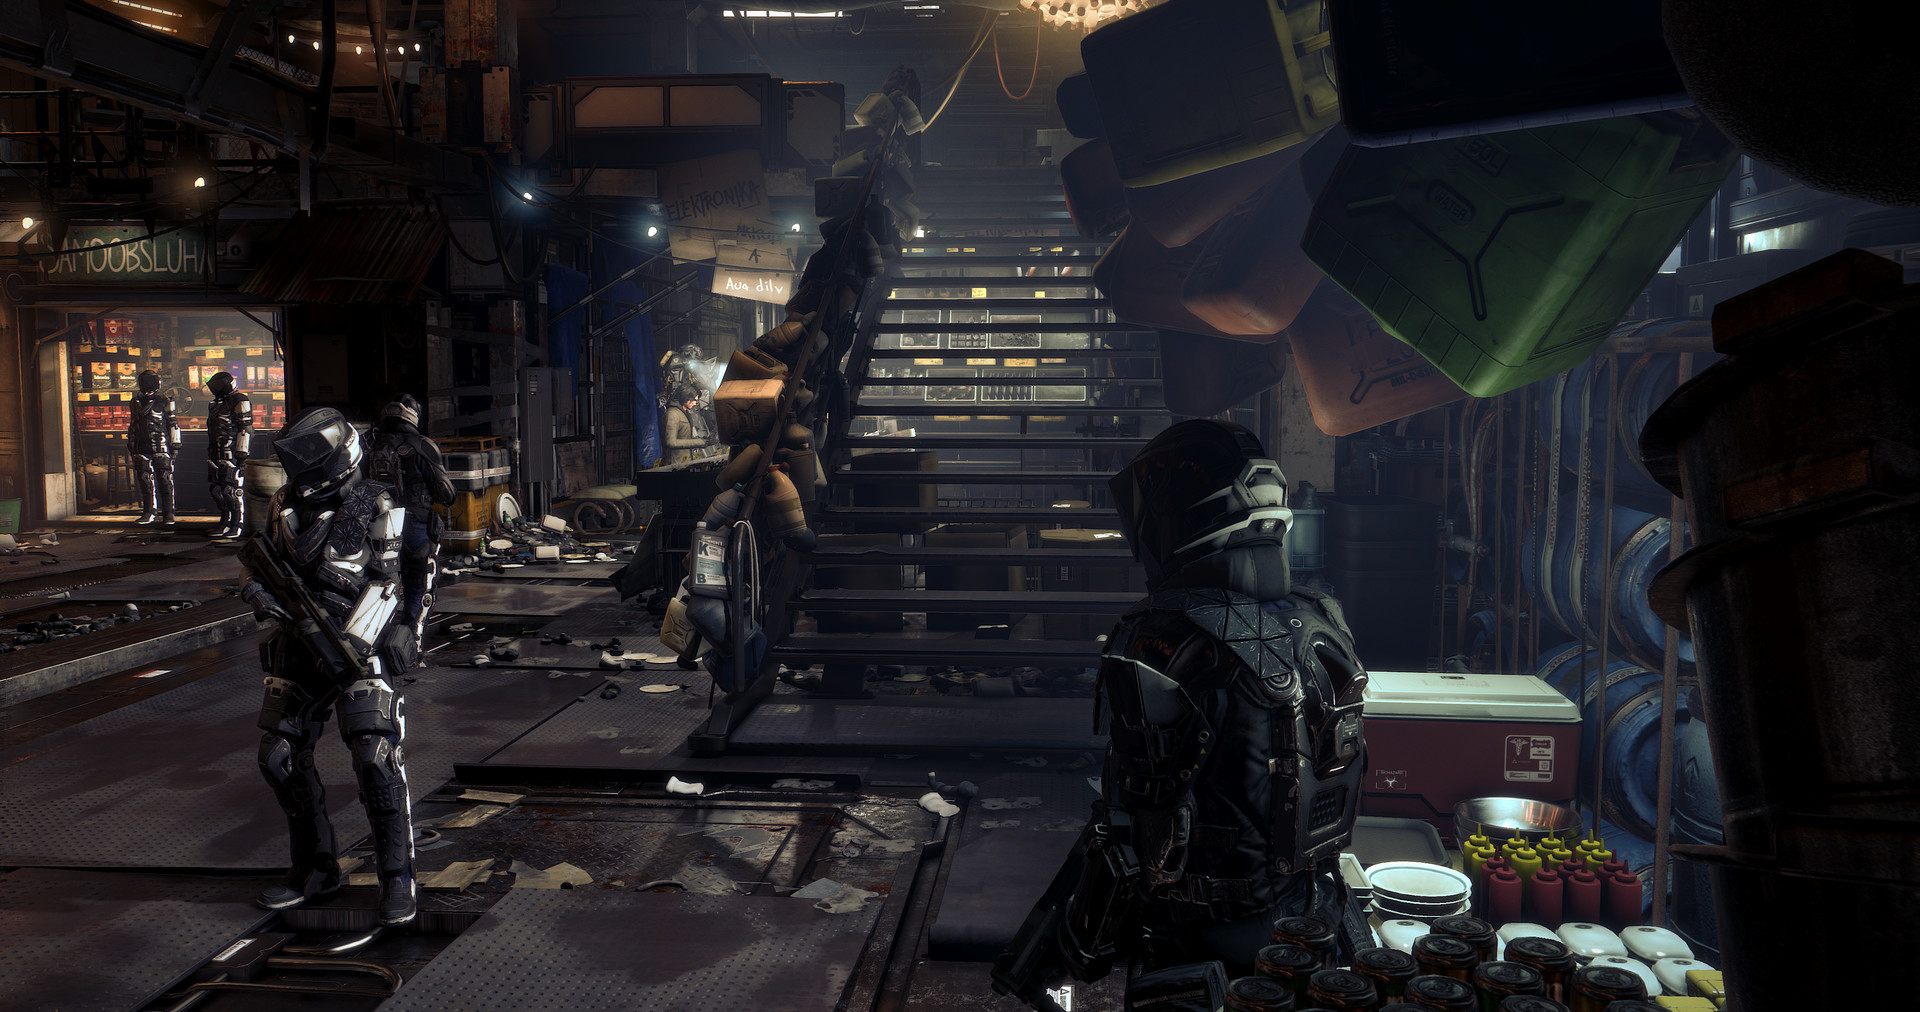 Deus Ex: Mankind Divided Gets a Visually Impressive Free VR Experience on Steam